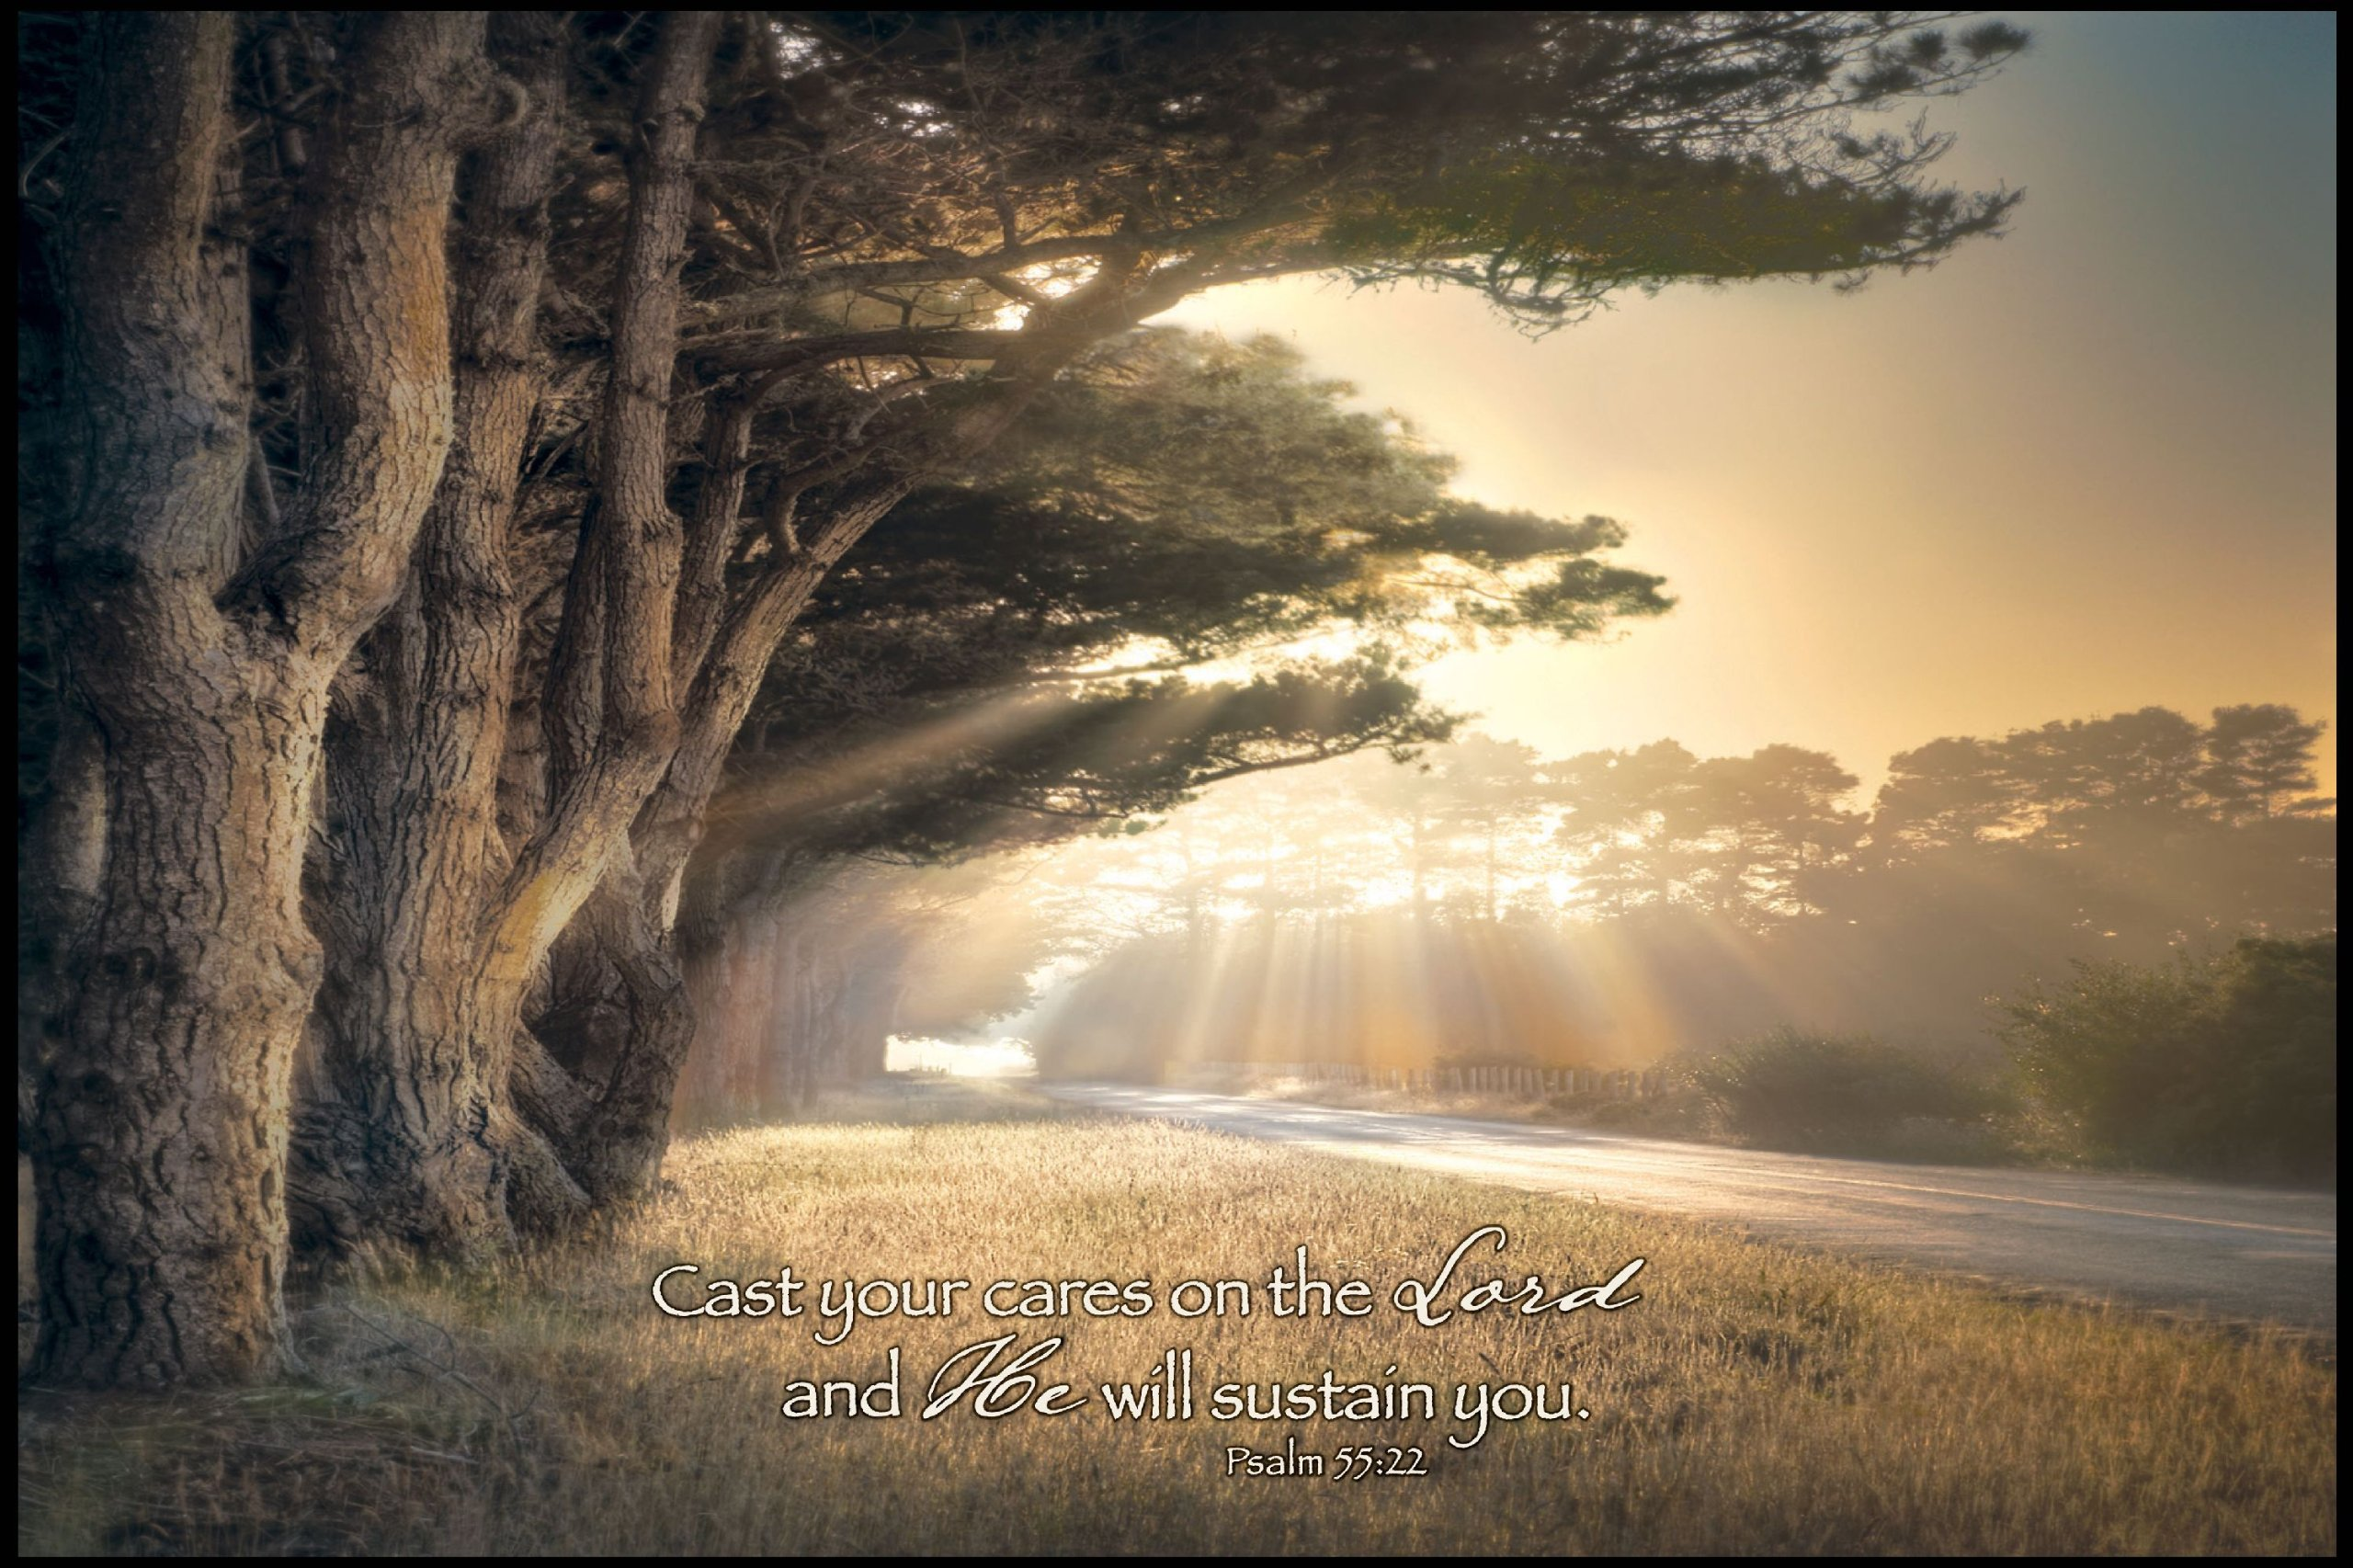 Trees in Radiant Light P Graham Dunn Inspirational Print on Wood Wall Plaque Featured Verse - Cast Your Cares on the Lord and He Will Sustain You. Psalm 55:22 - Size 36 x 24 in. by P Graham Dunn